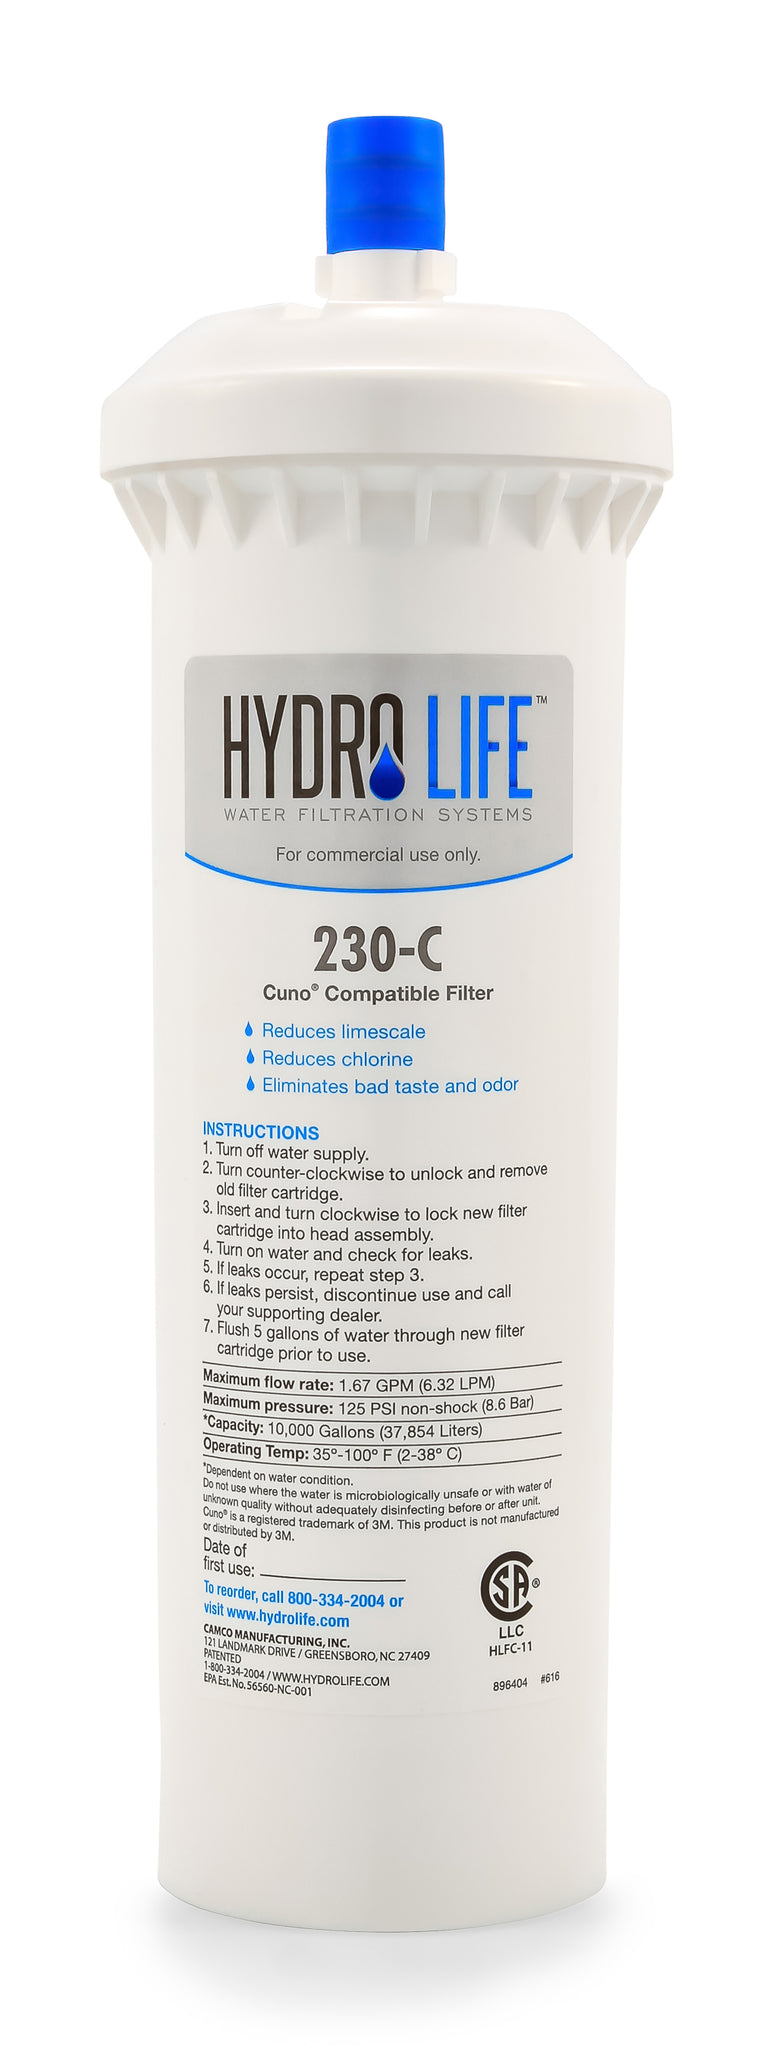 Hydro Life Commercial 230-C - Cuno Replacement Cartridge, LLC